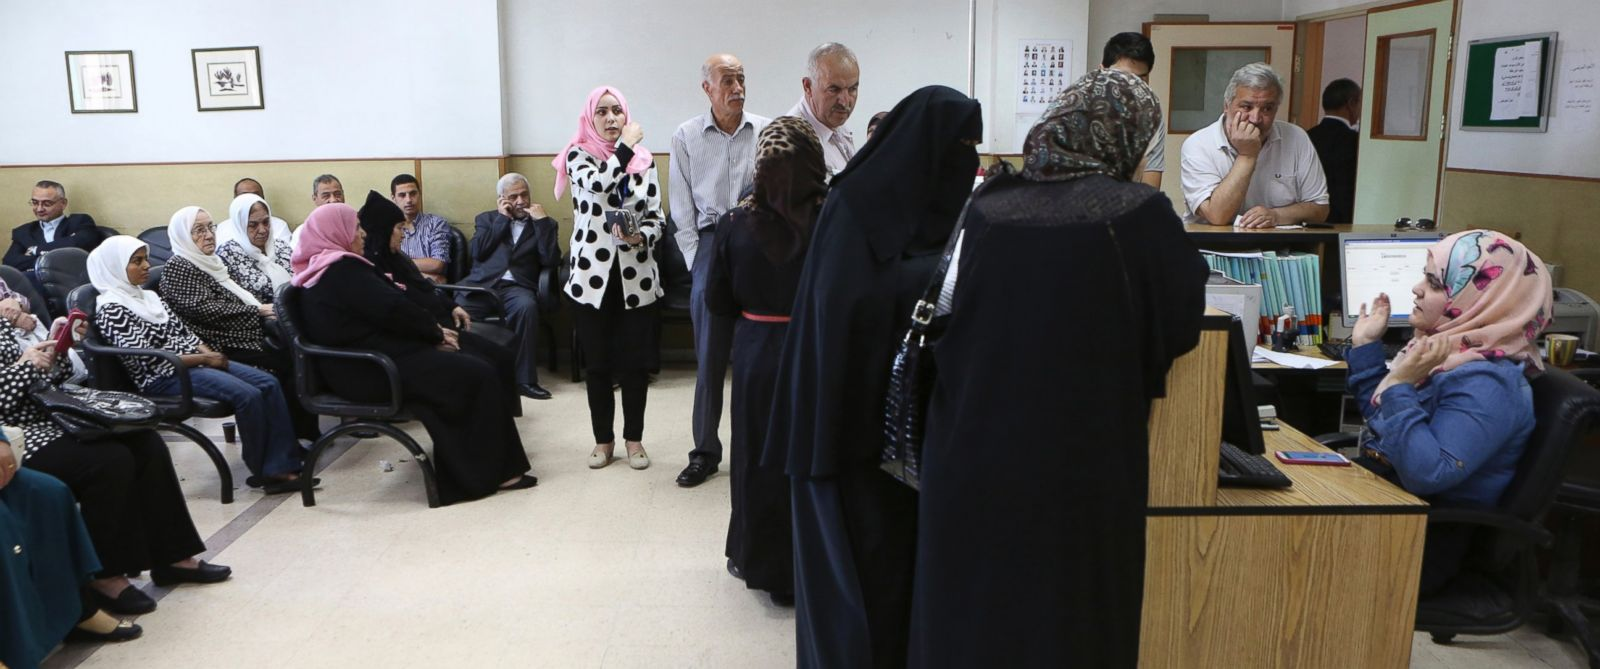 PHOTO: Patients wait for their checkups at Jordans National Center for Diabetes in Amman, Jordan, June 14, 2015.